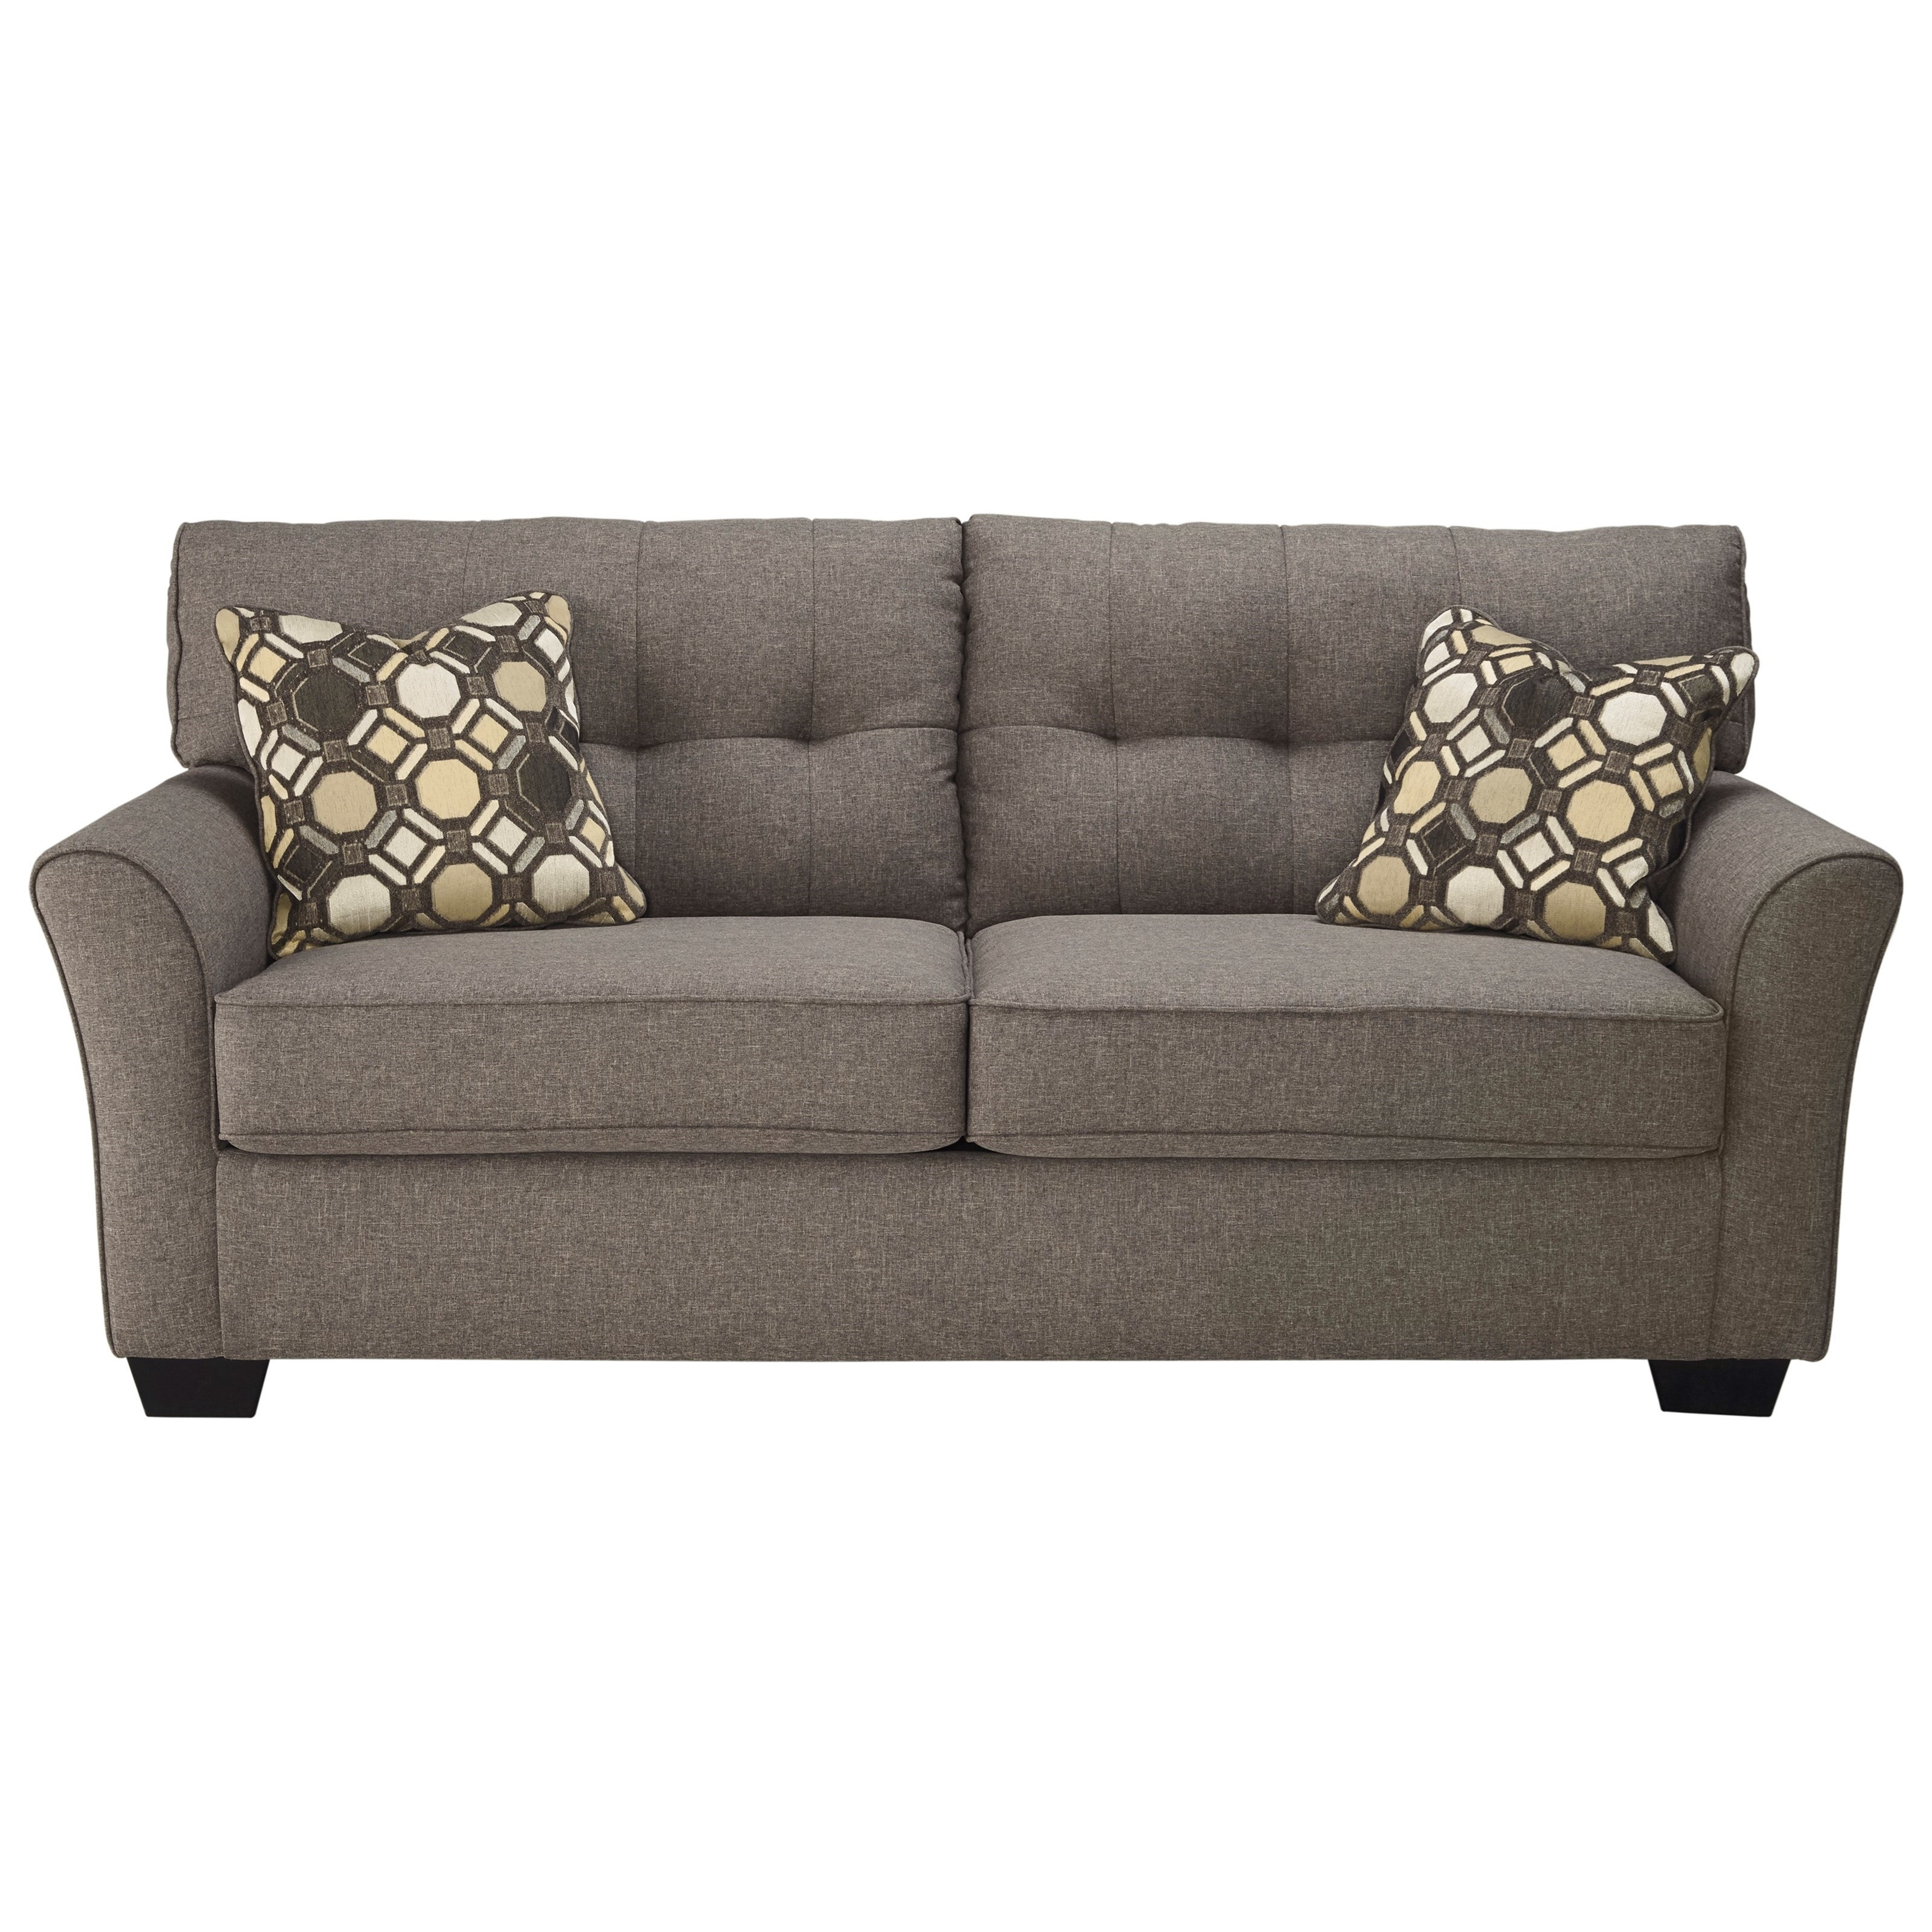 Signature Design Ashley Tibbee Contemporary Sofa With Tufted In Ashley Tufted Sofa (Image 14 of 15)